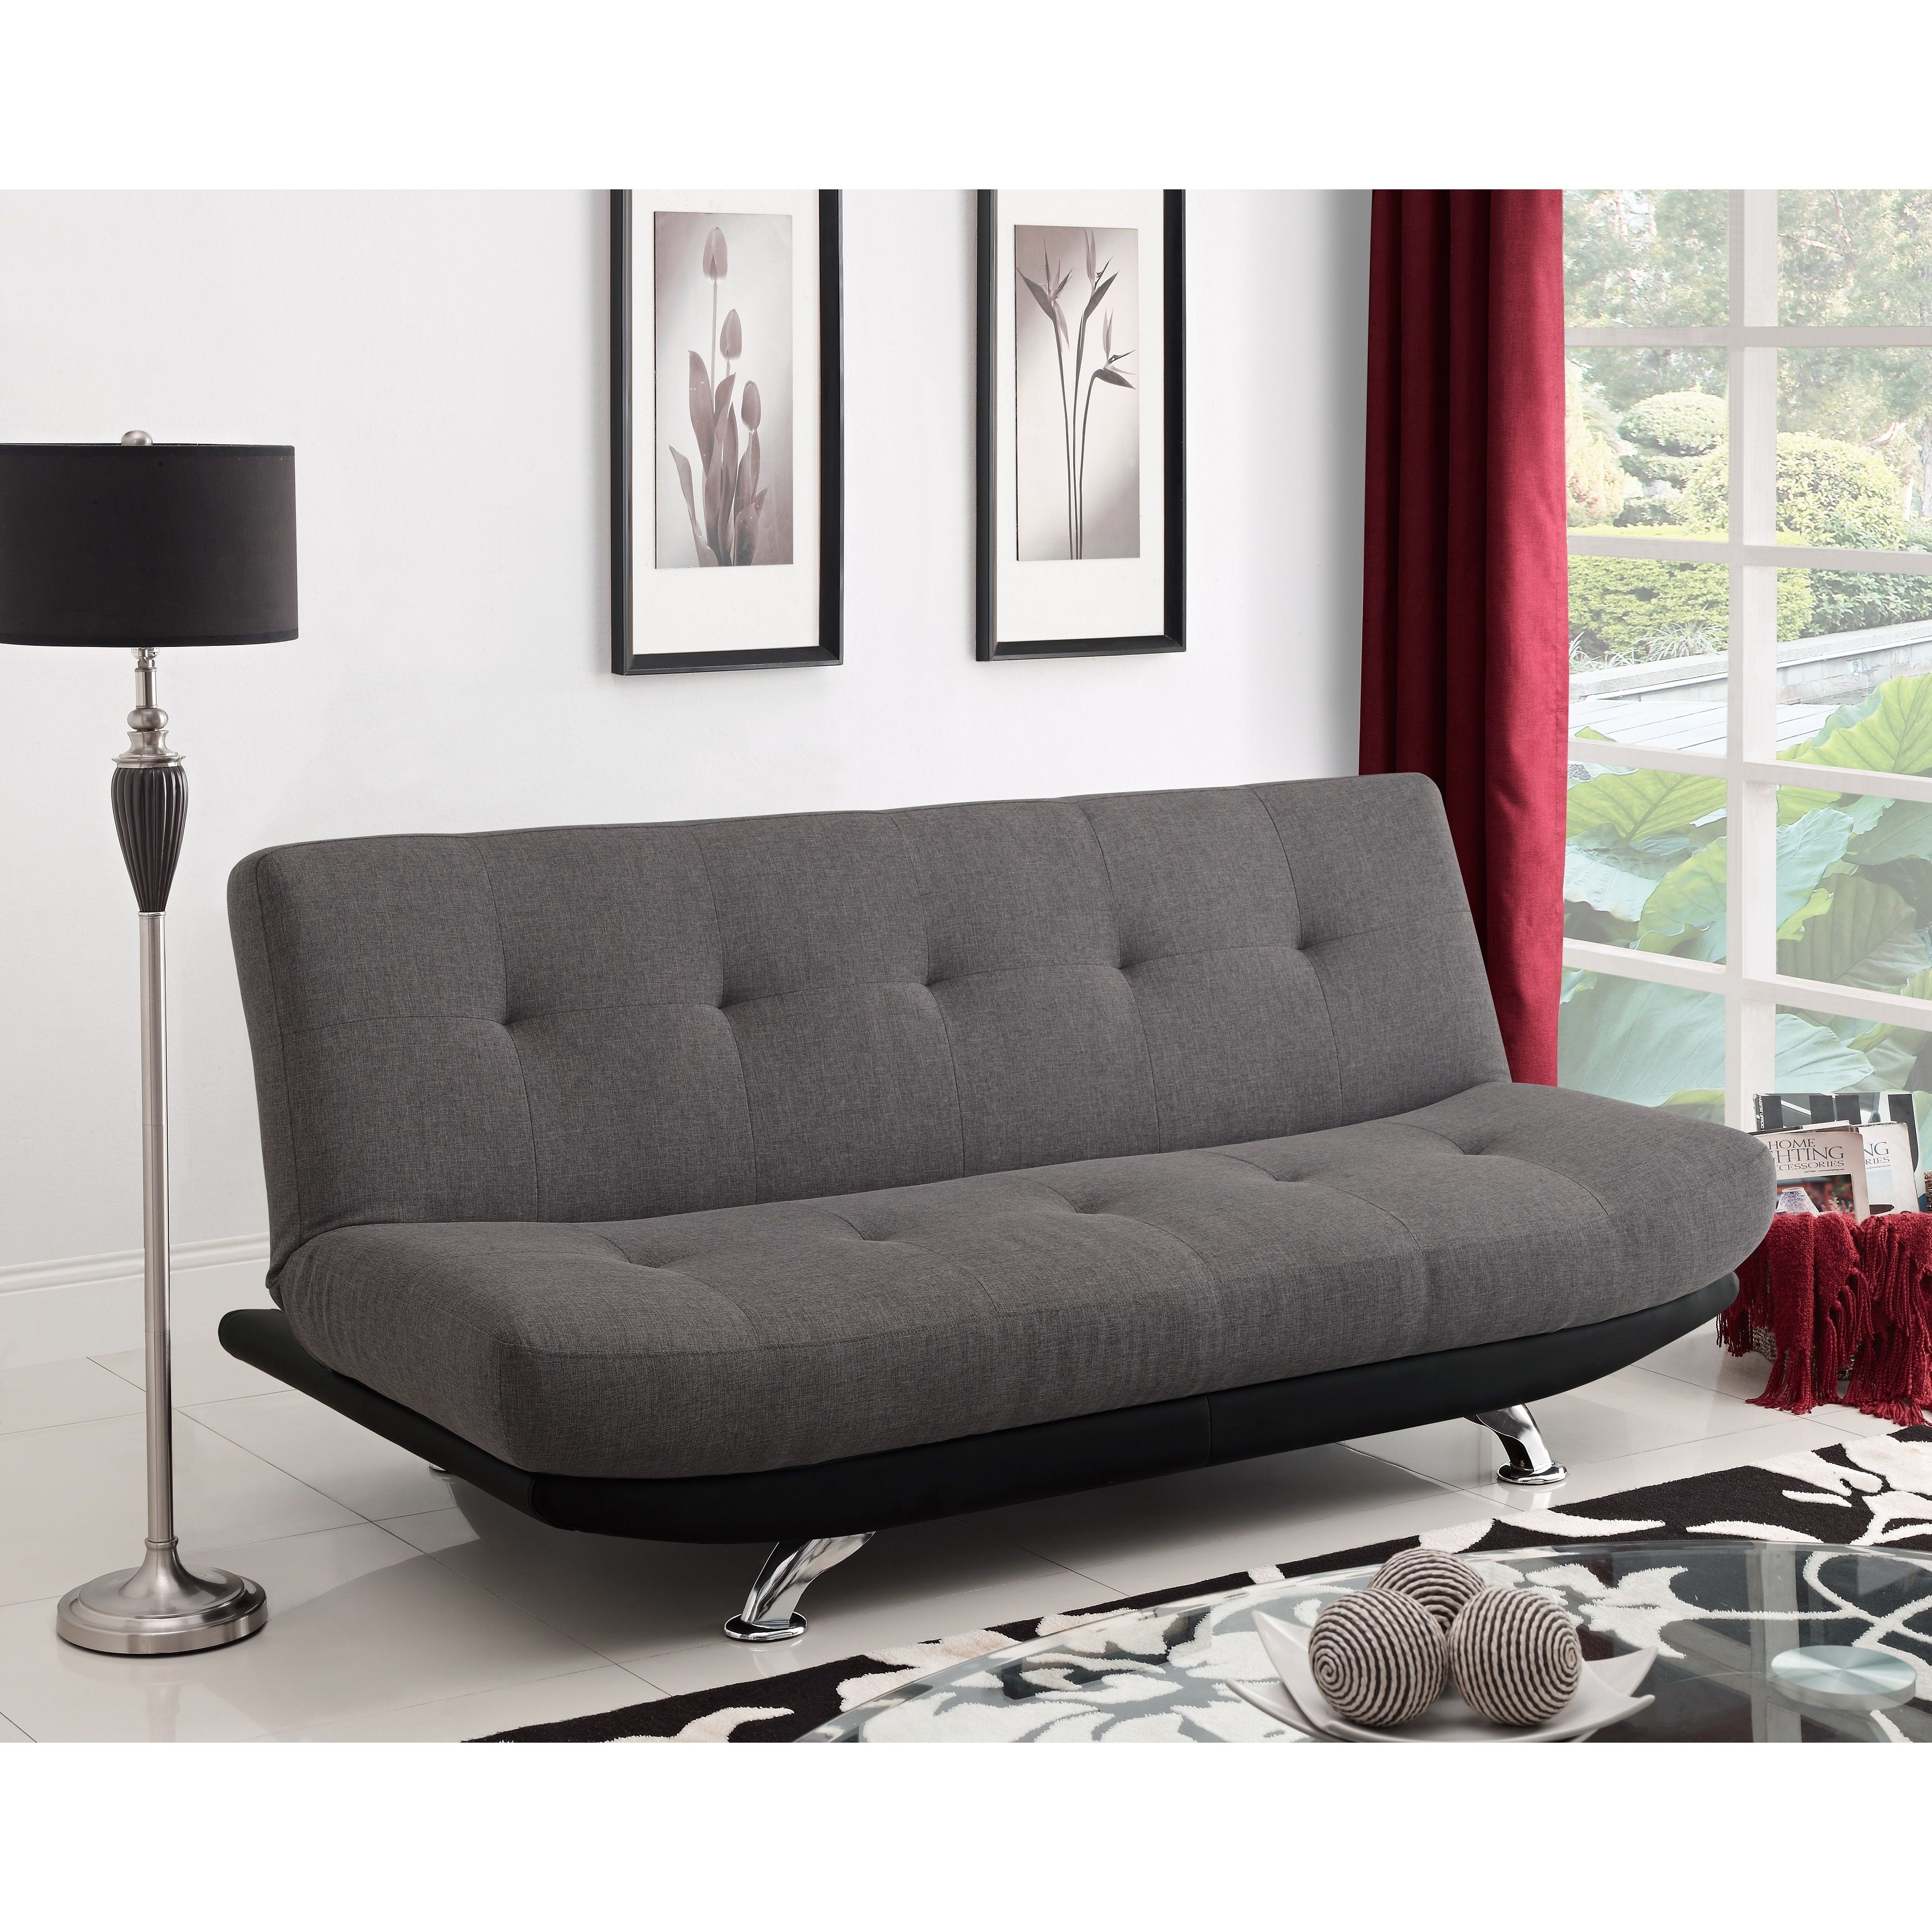 Bring A Modern Look To Your Living Space With The Dhp Skyline Futon